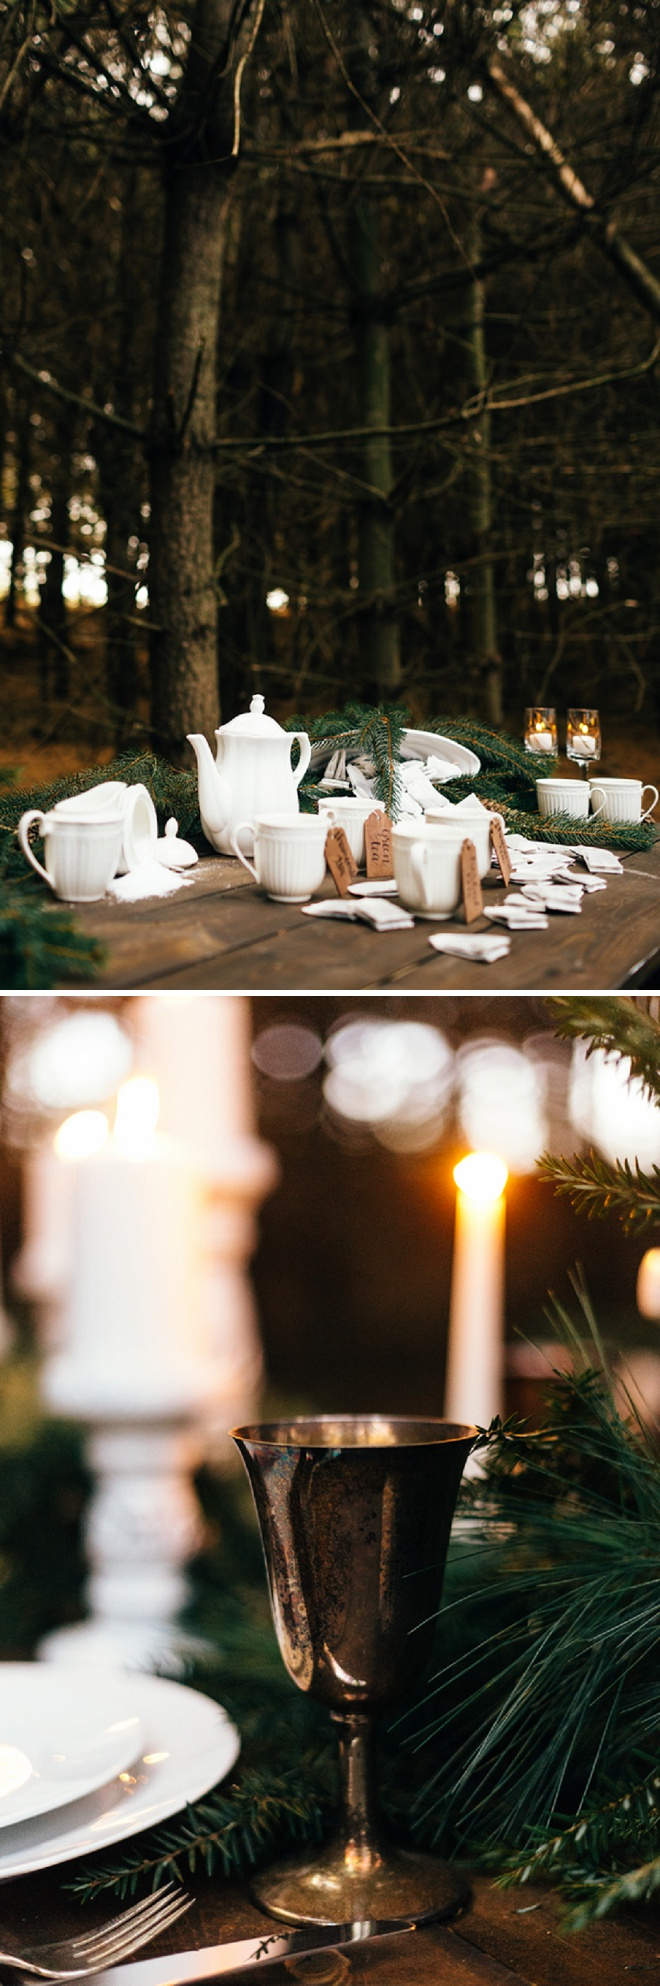 We love this darling styled shoot featuring tea and pine!